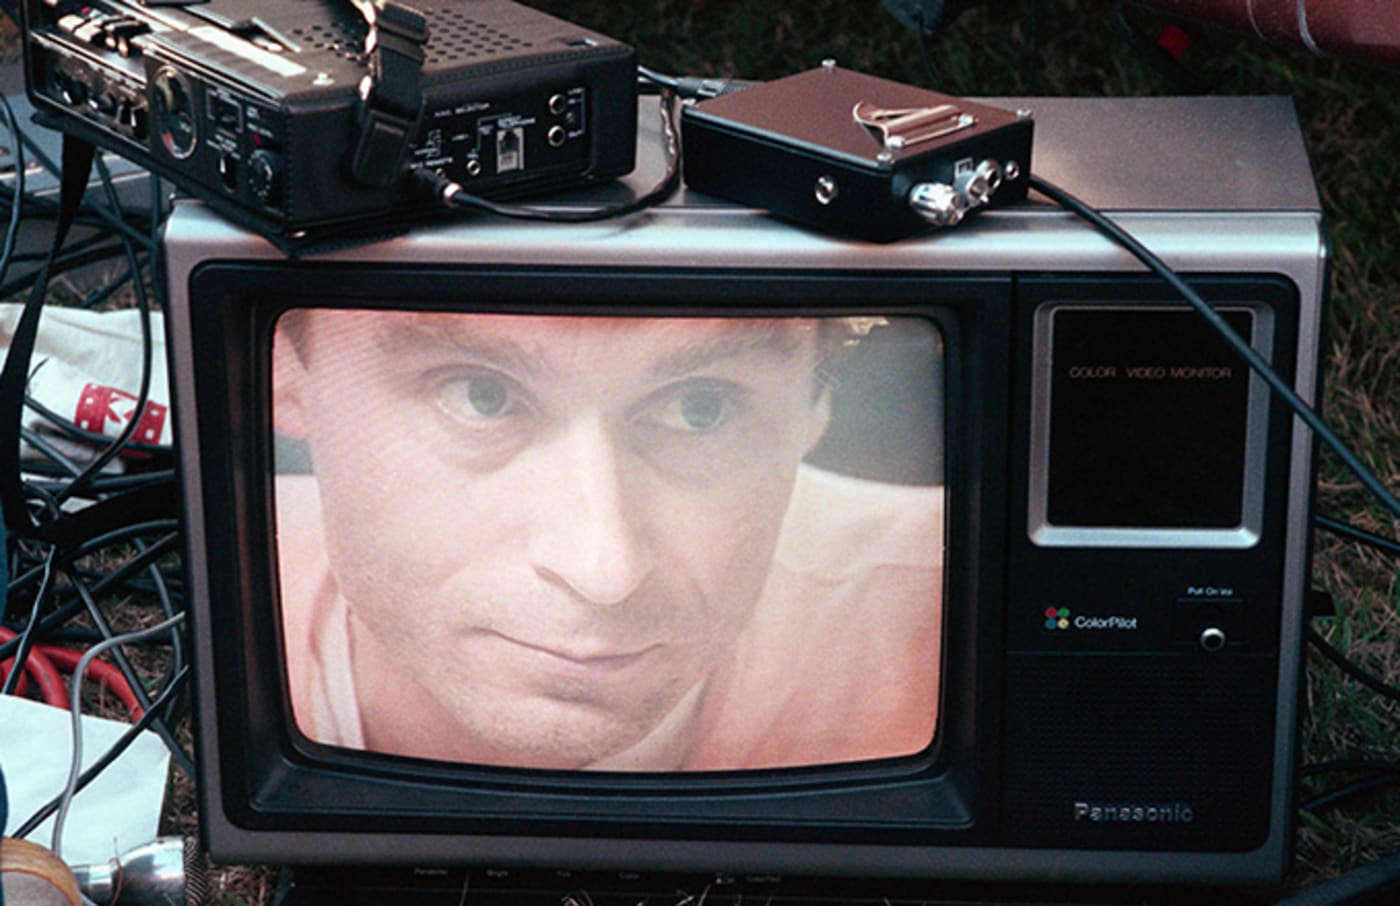 This is a photo of Ted Bundy.